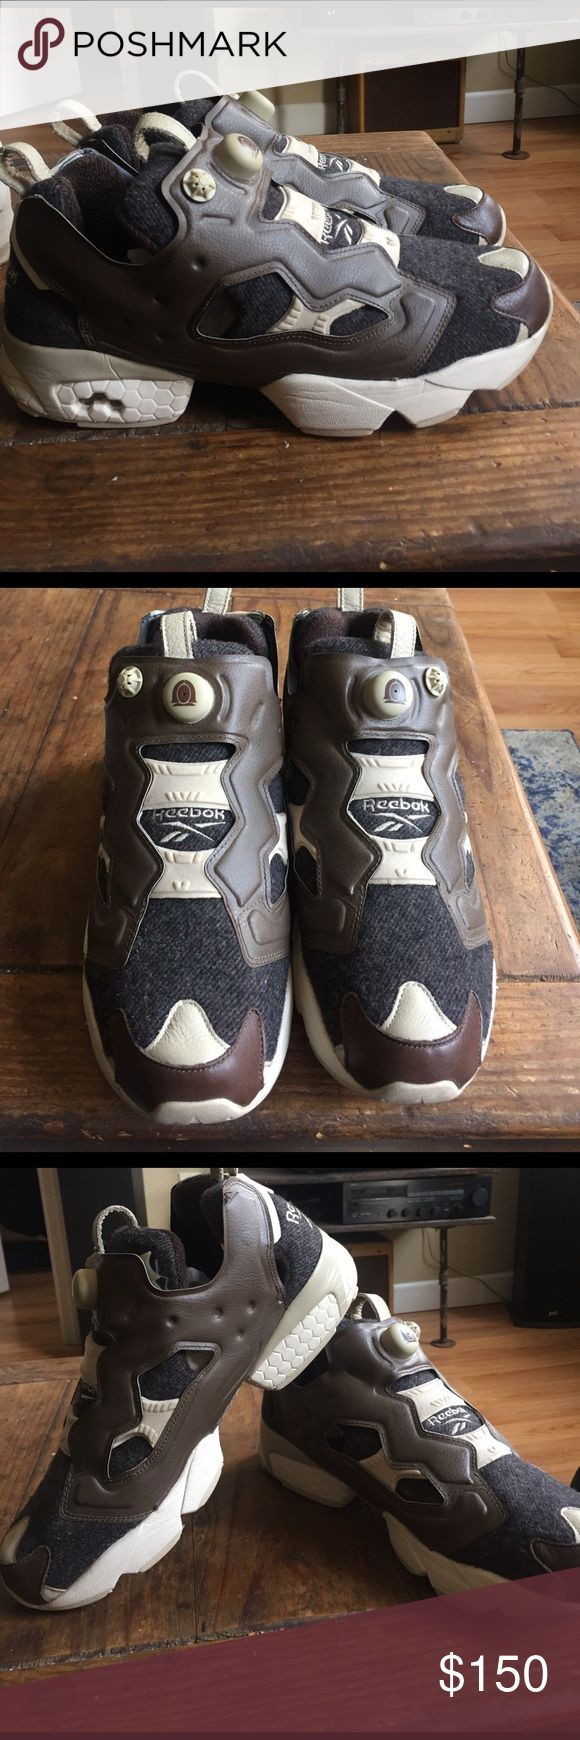 Reebok Insta Pump Fury Rare Reebok Insta Pump Fury SAMPLE shoes. These shoes were never produced. These were given to by a Reebok Employee. Realize the retail price isn't correct cause you couldn't buy these. These were worn a few times still in great condition. Reebok Shoes Sneakers